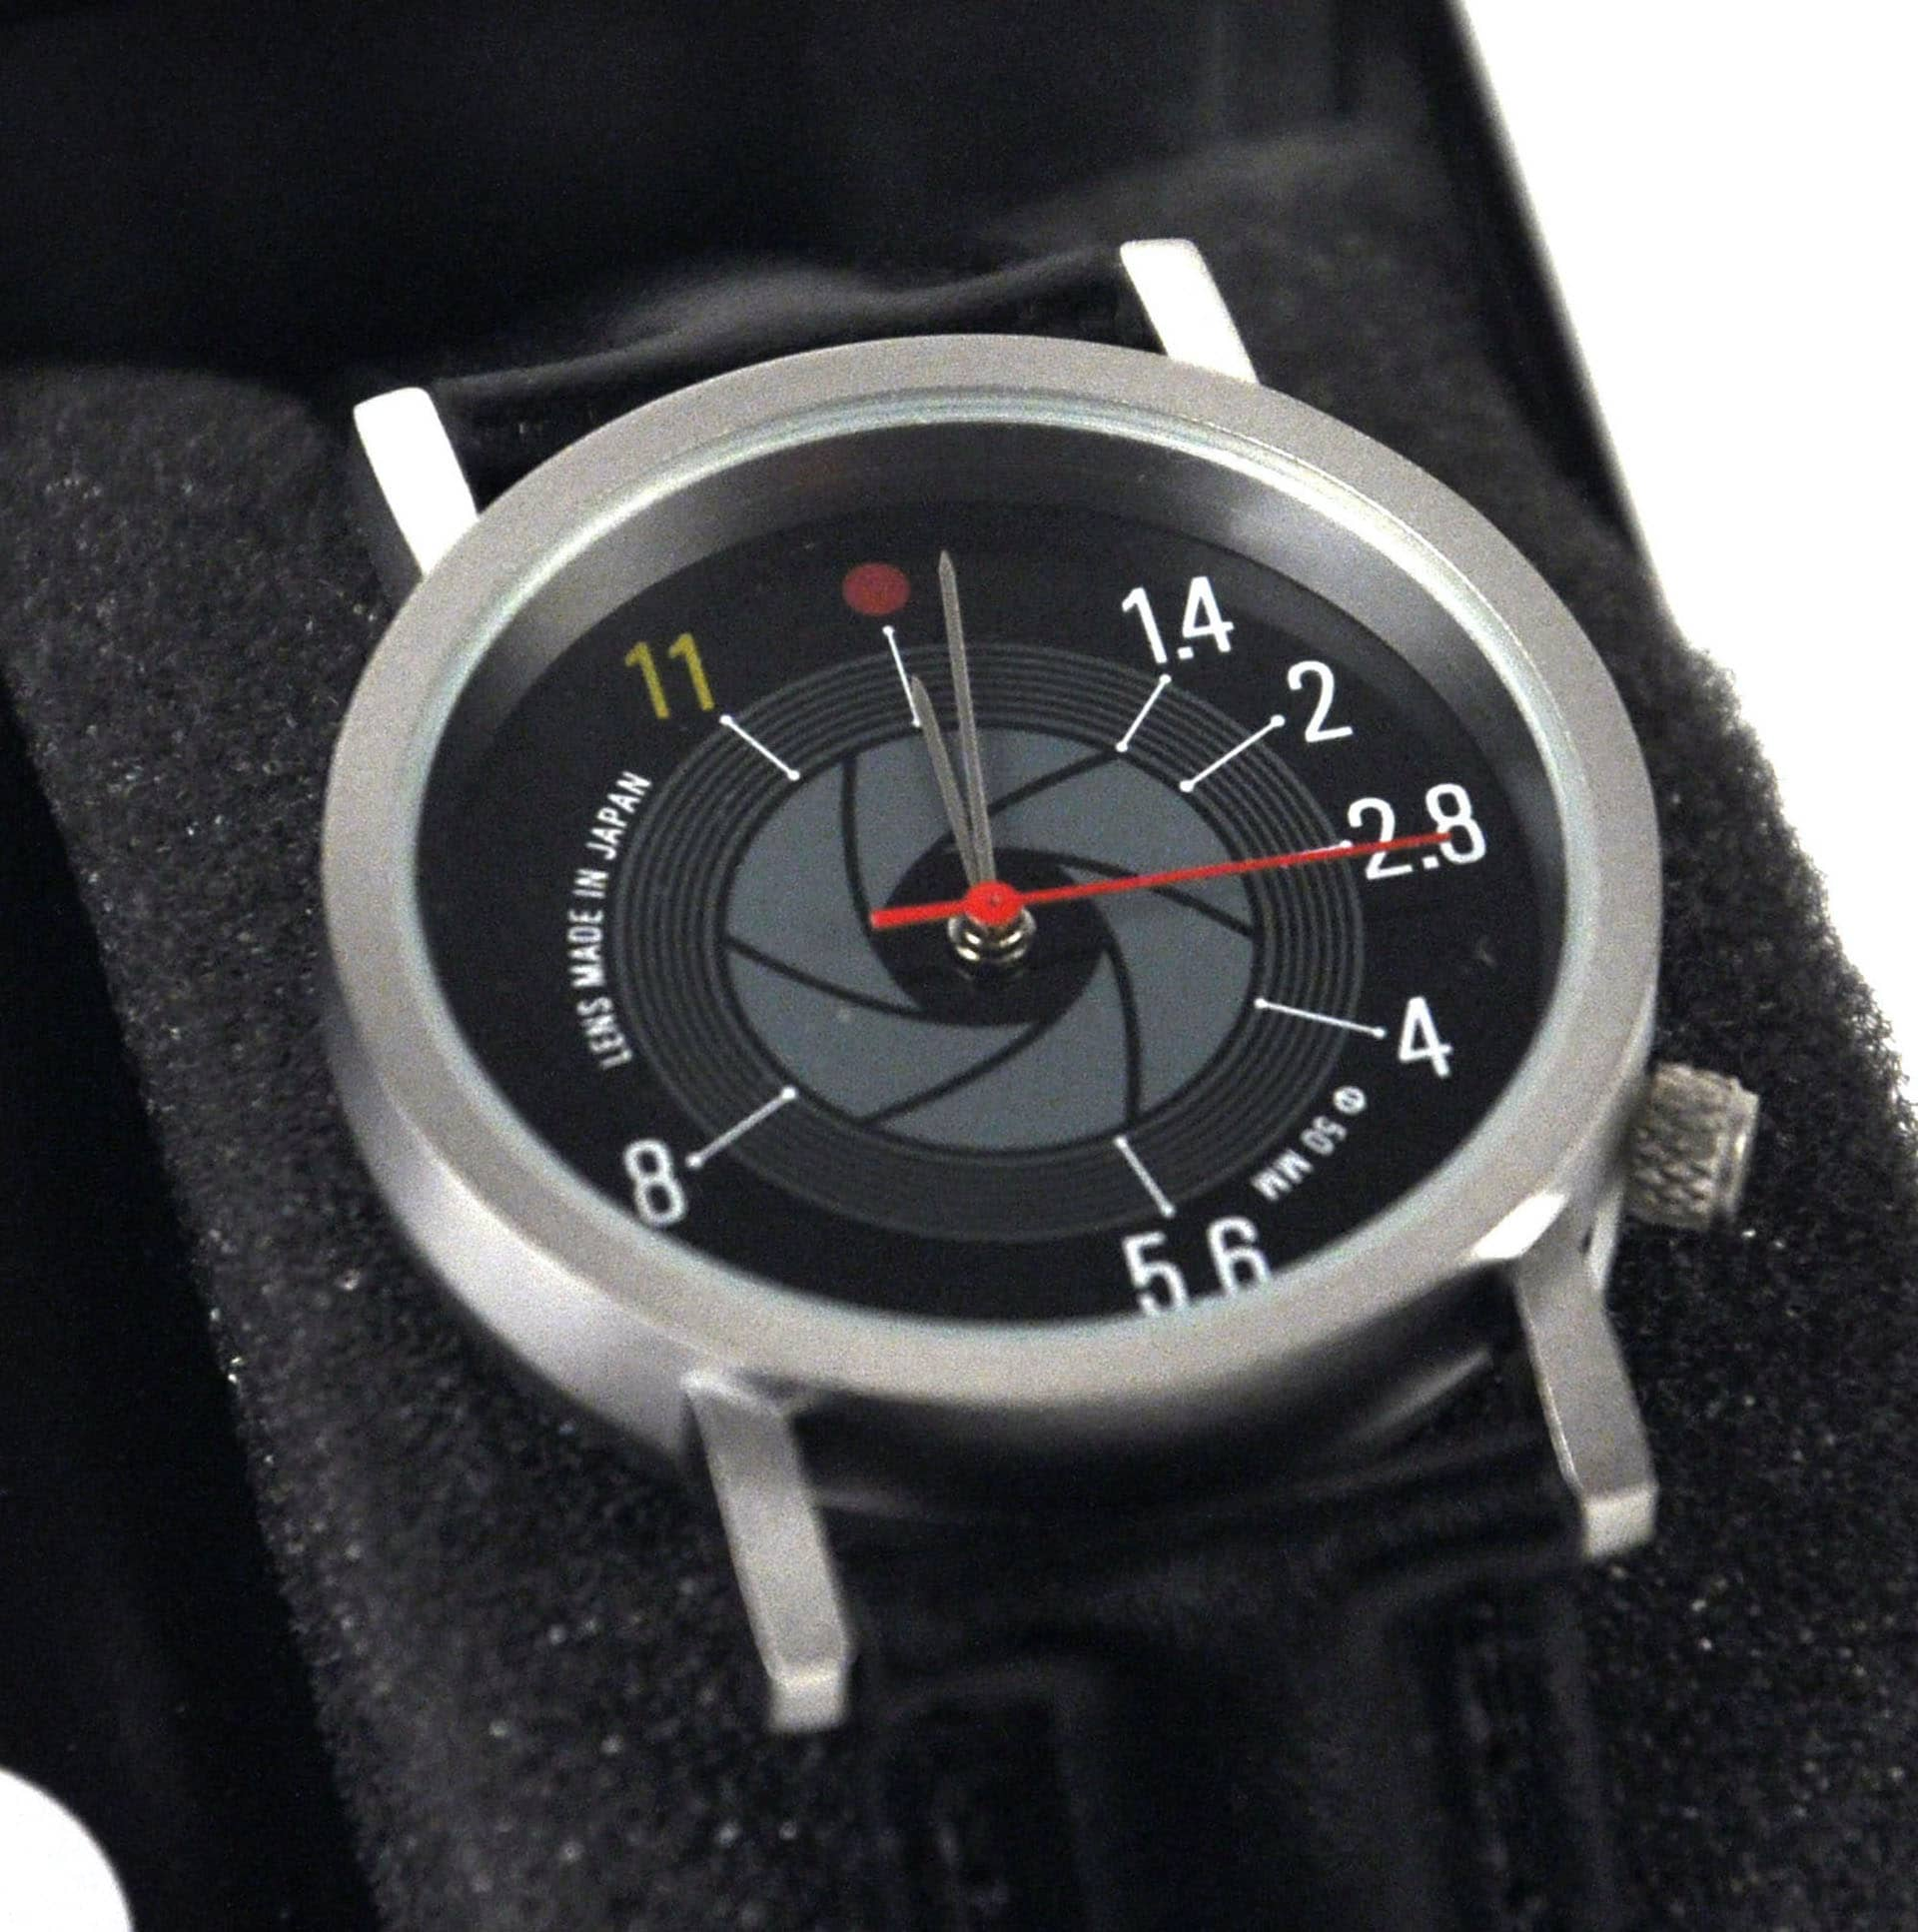 Best Photo Gifts for Photographers - Ideas Photographer Lovers - Fstop Watch